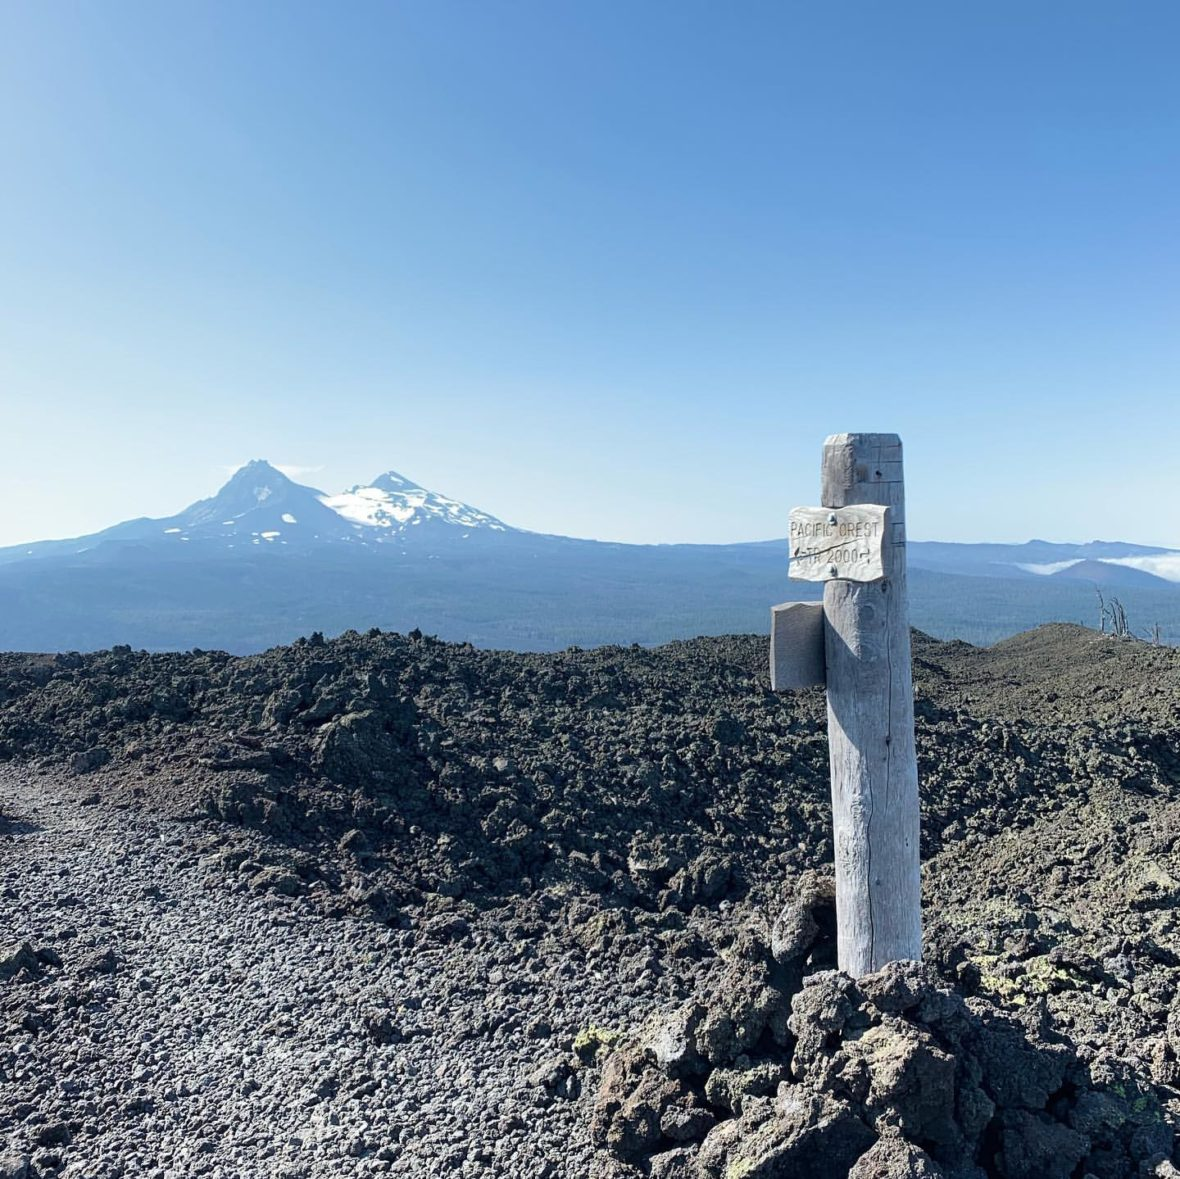 Day 37 in the lava fields